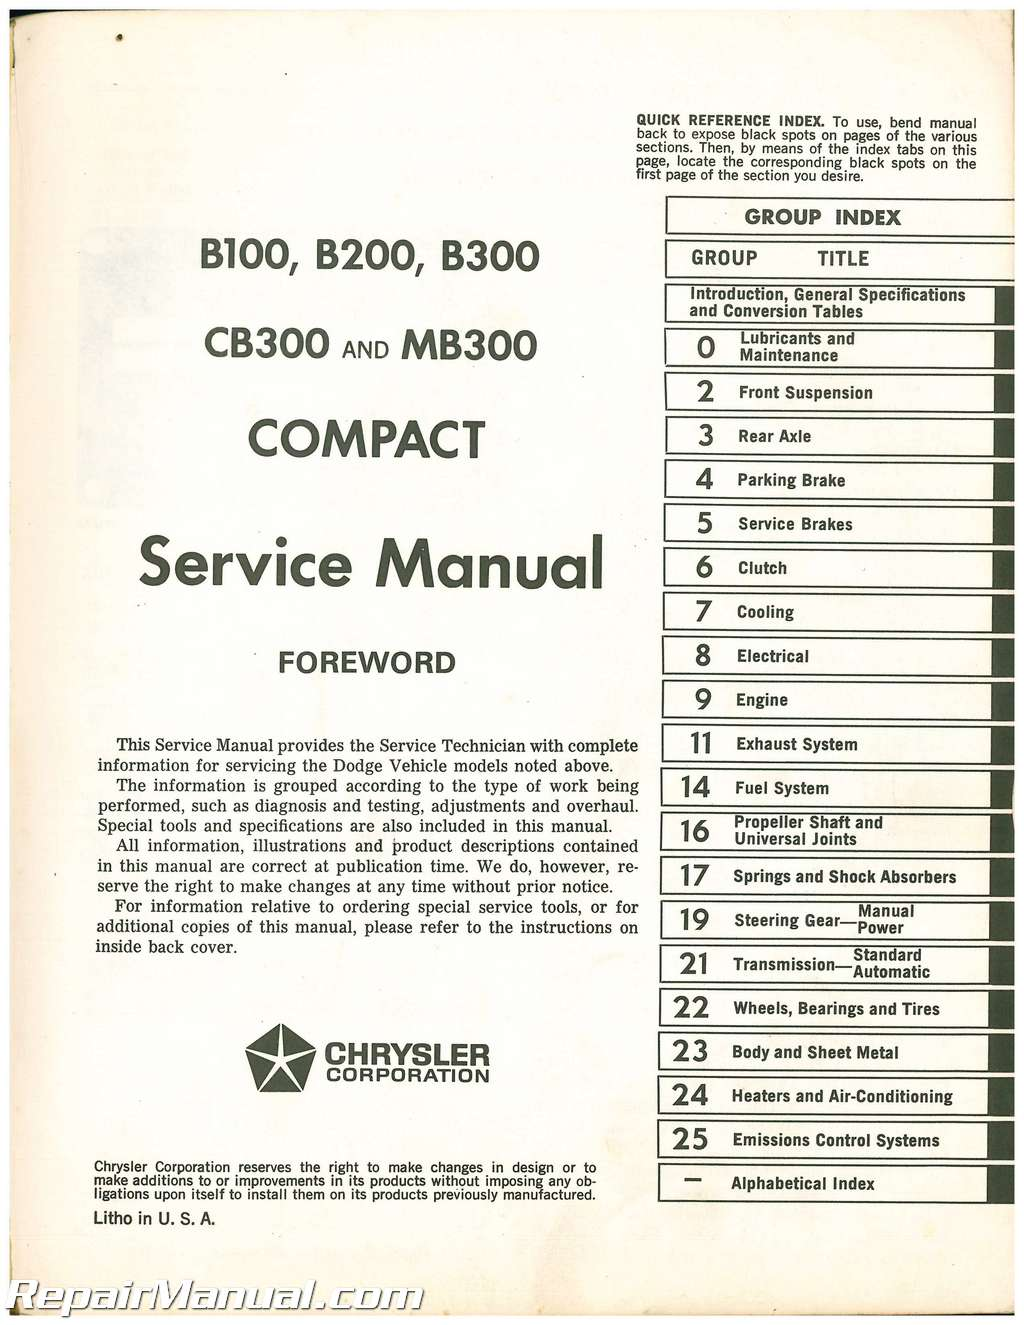 used 1974 dodge compact service manual